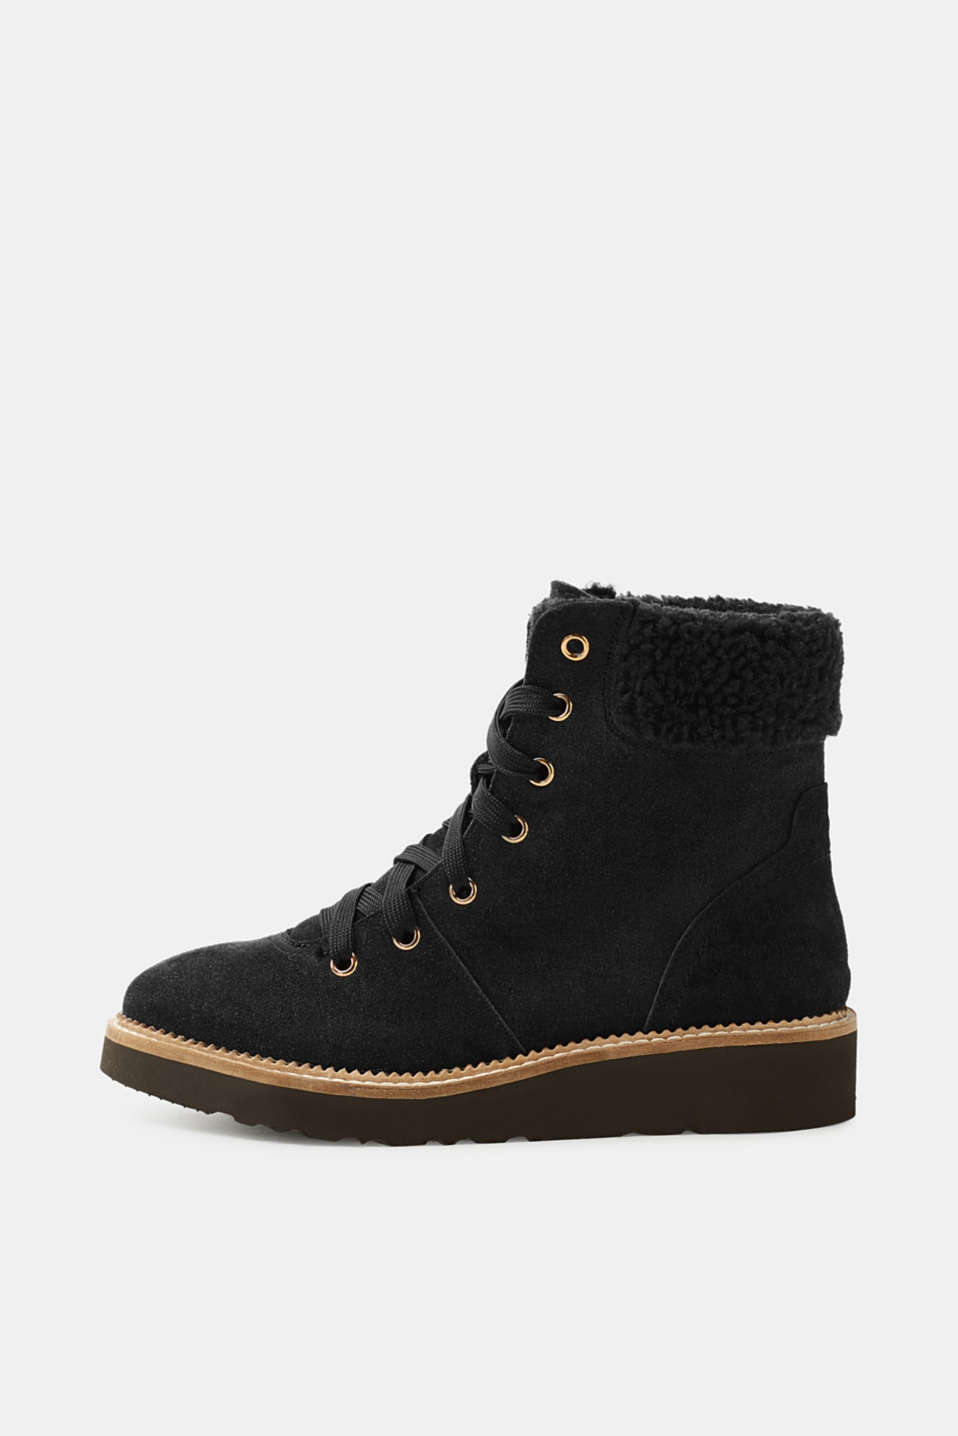 Esprit - Lined lace-up suede boots